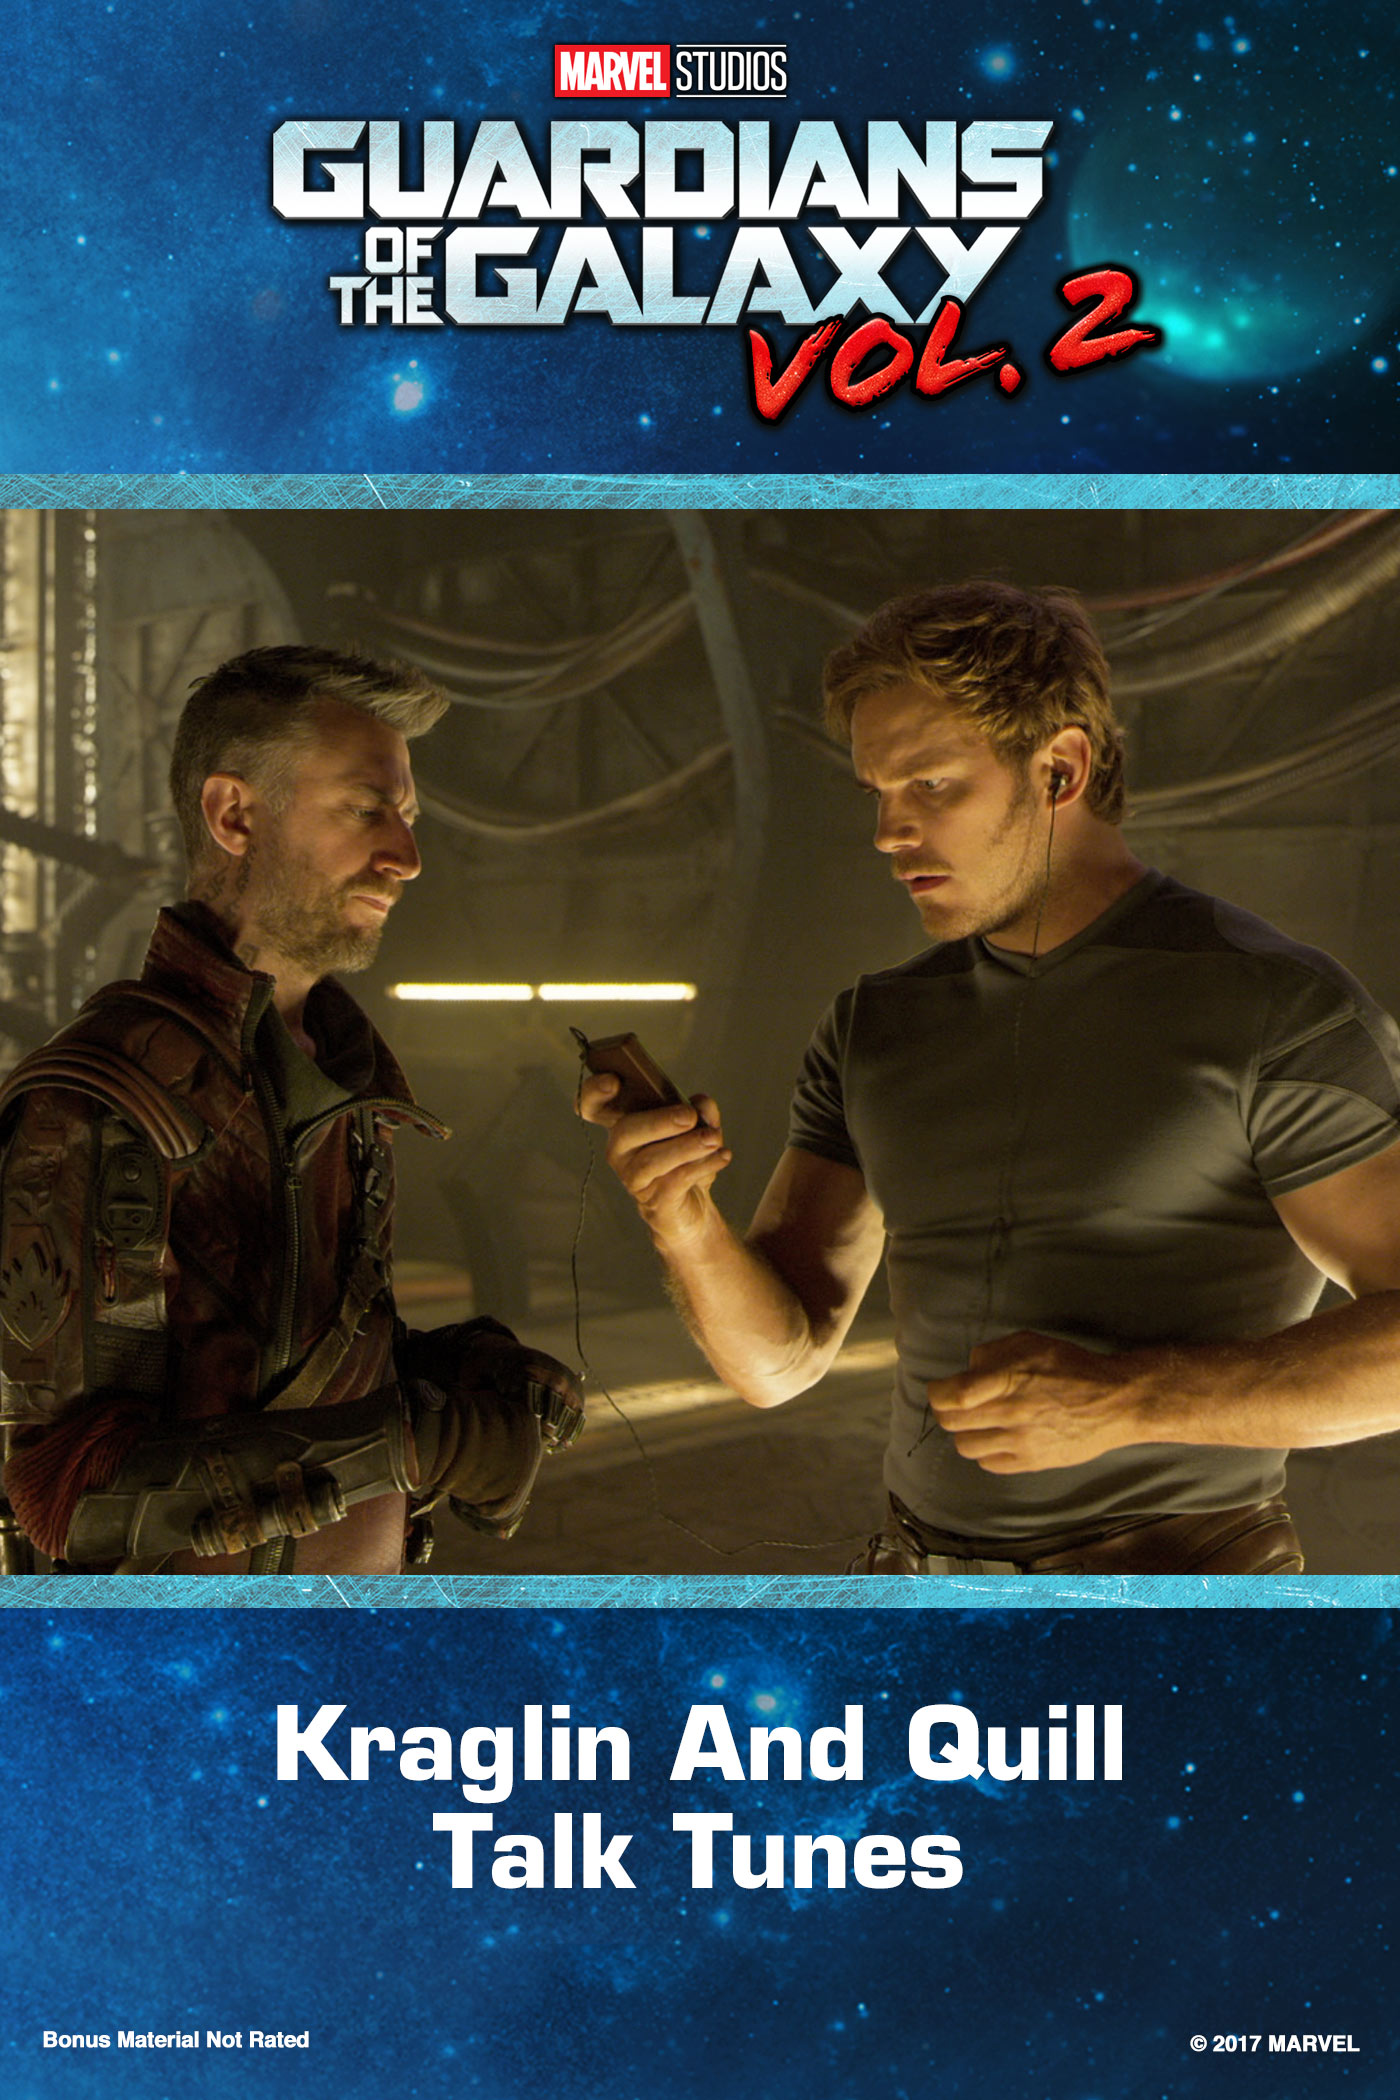 Kraglin And Quill Talk Tunes